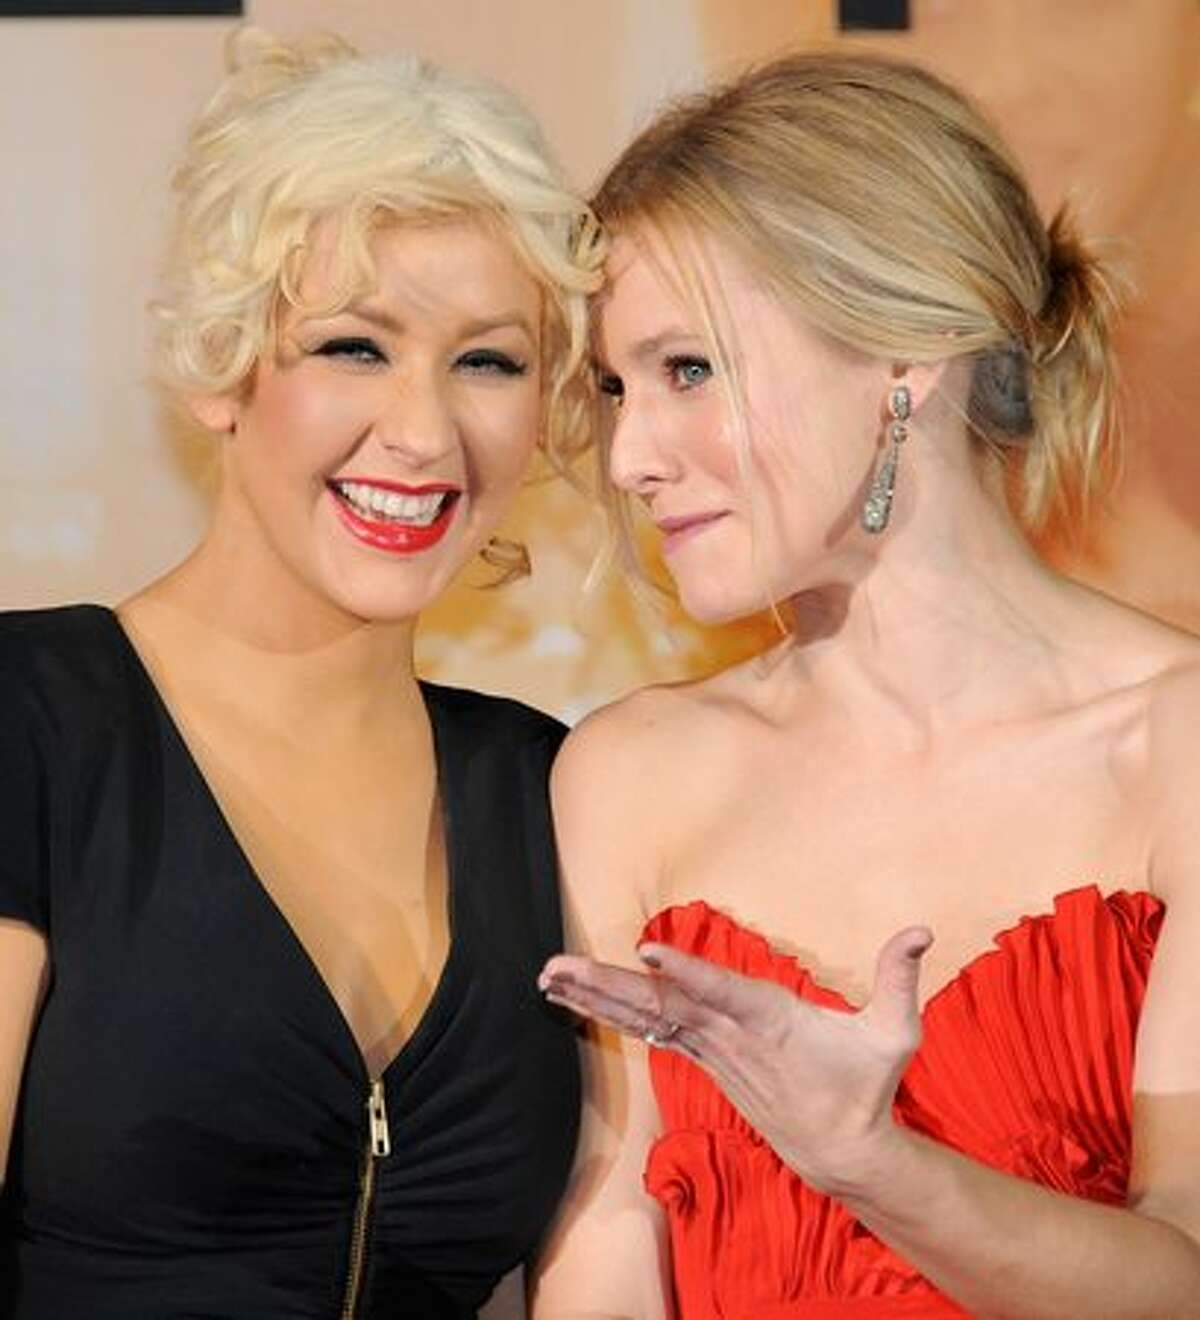 Actress Christina Aguilera (L) shares a light moment with Kristen Bell (R) during the Japan premier of their film